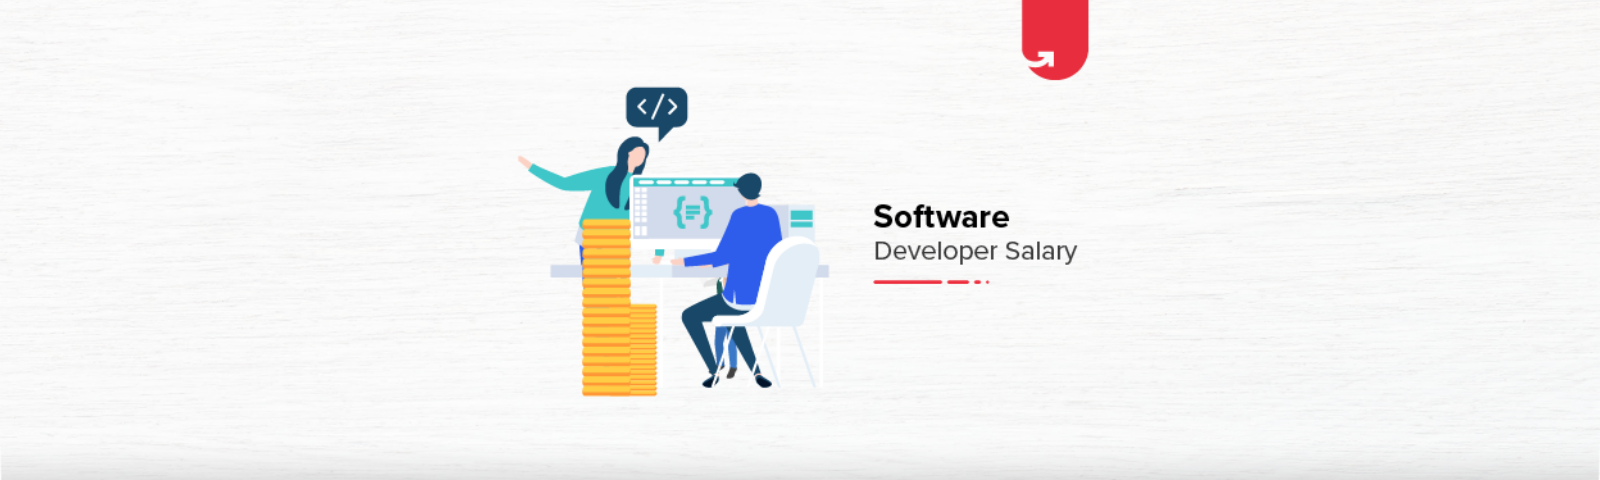 Software Engineer Developer Salary In India In 2020 For Freshers Experienced Upgrad Blog